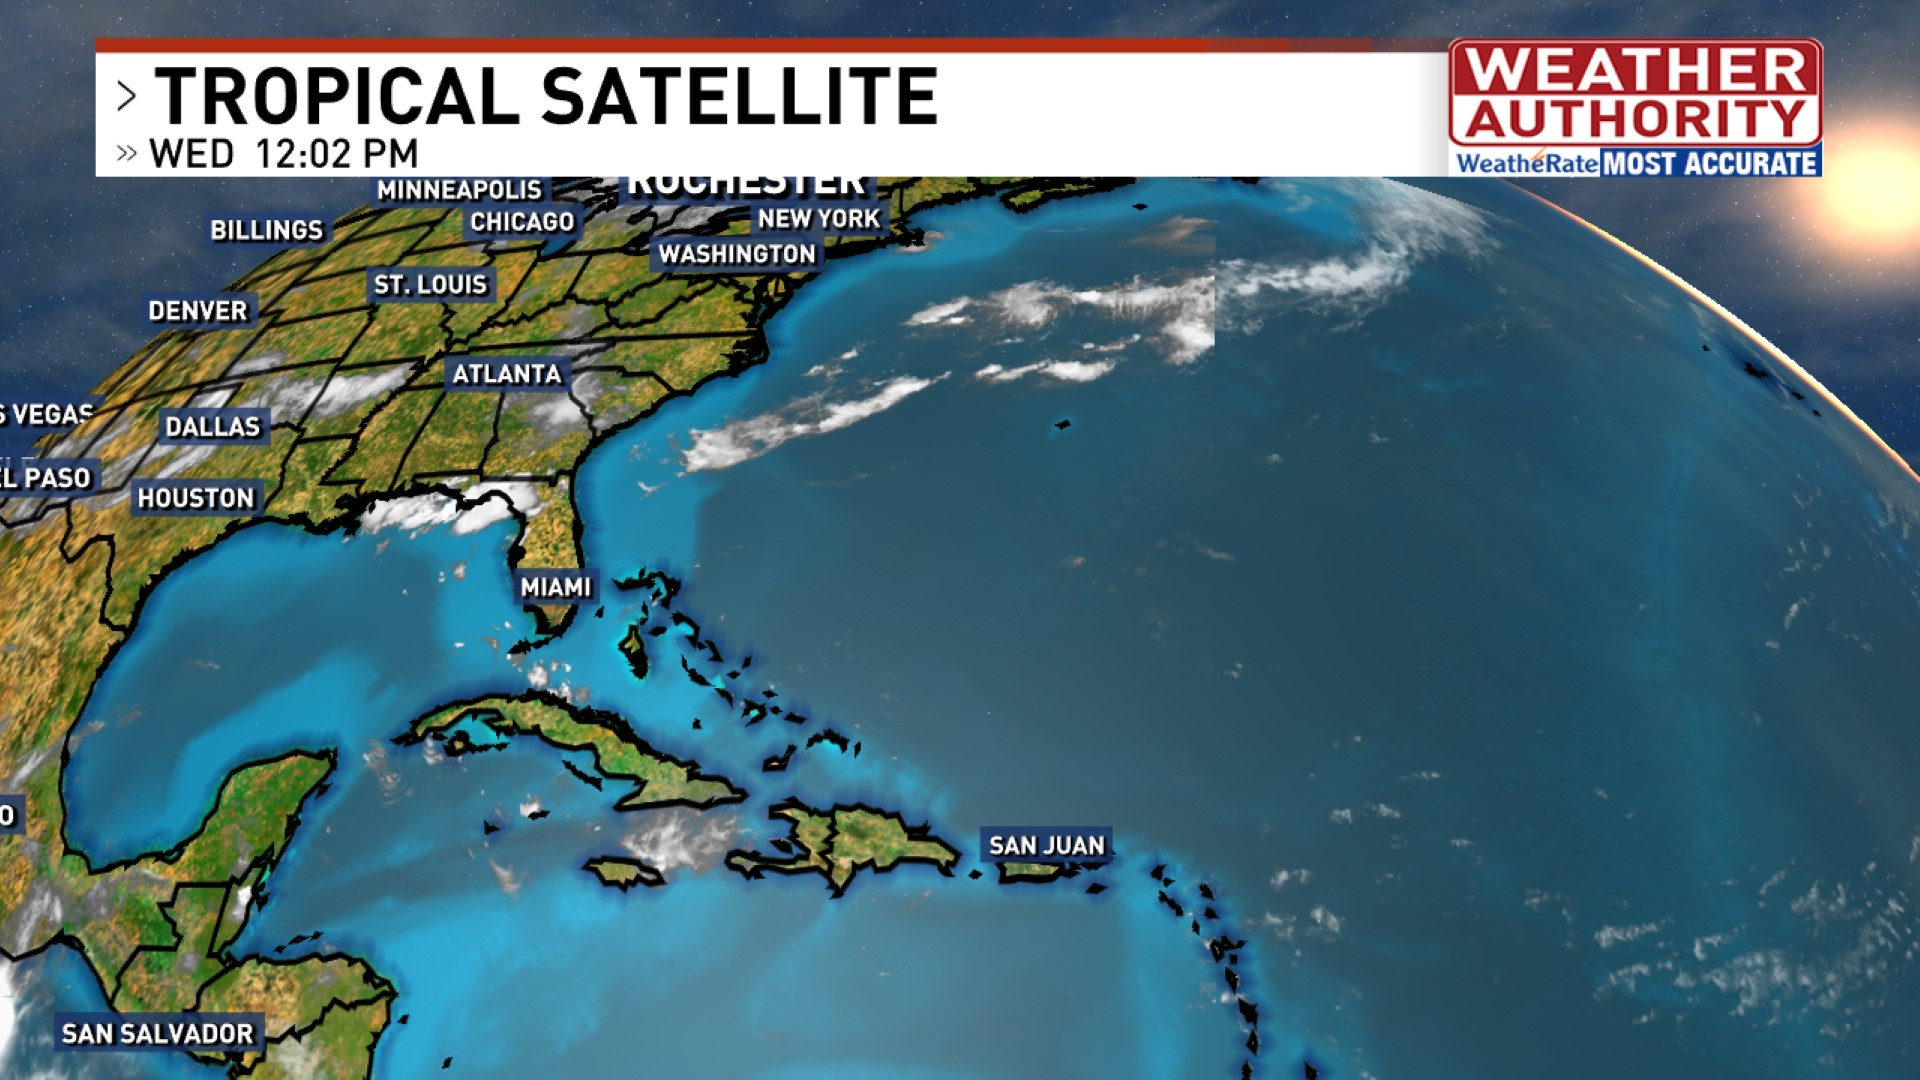 Rochester Maps | News, Weather, Sports, Breaking News | WHAM on farmers almanac weather map, world weather map, weather radar map, europe weather map, local weather map, israel weather map, weather forecast map, nbc weather map, channel 4 weather map, nasa weather map, necn weather map,